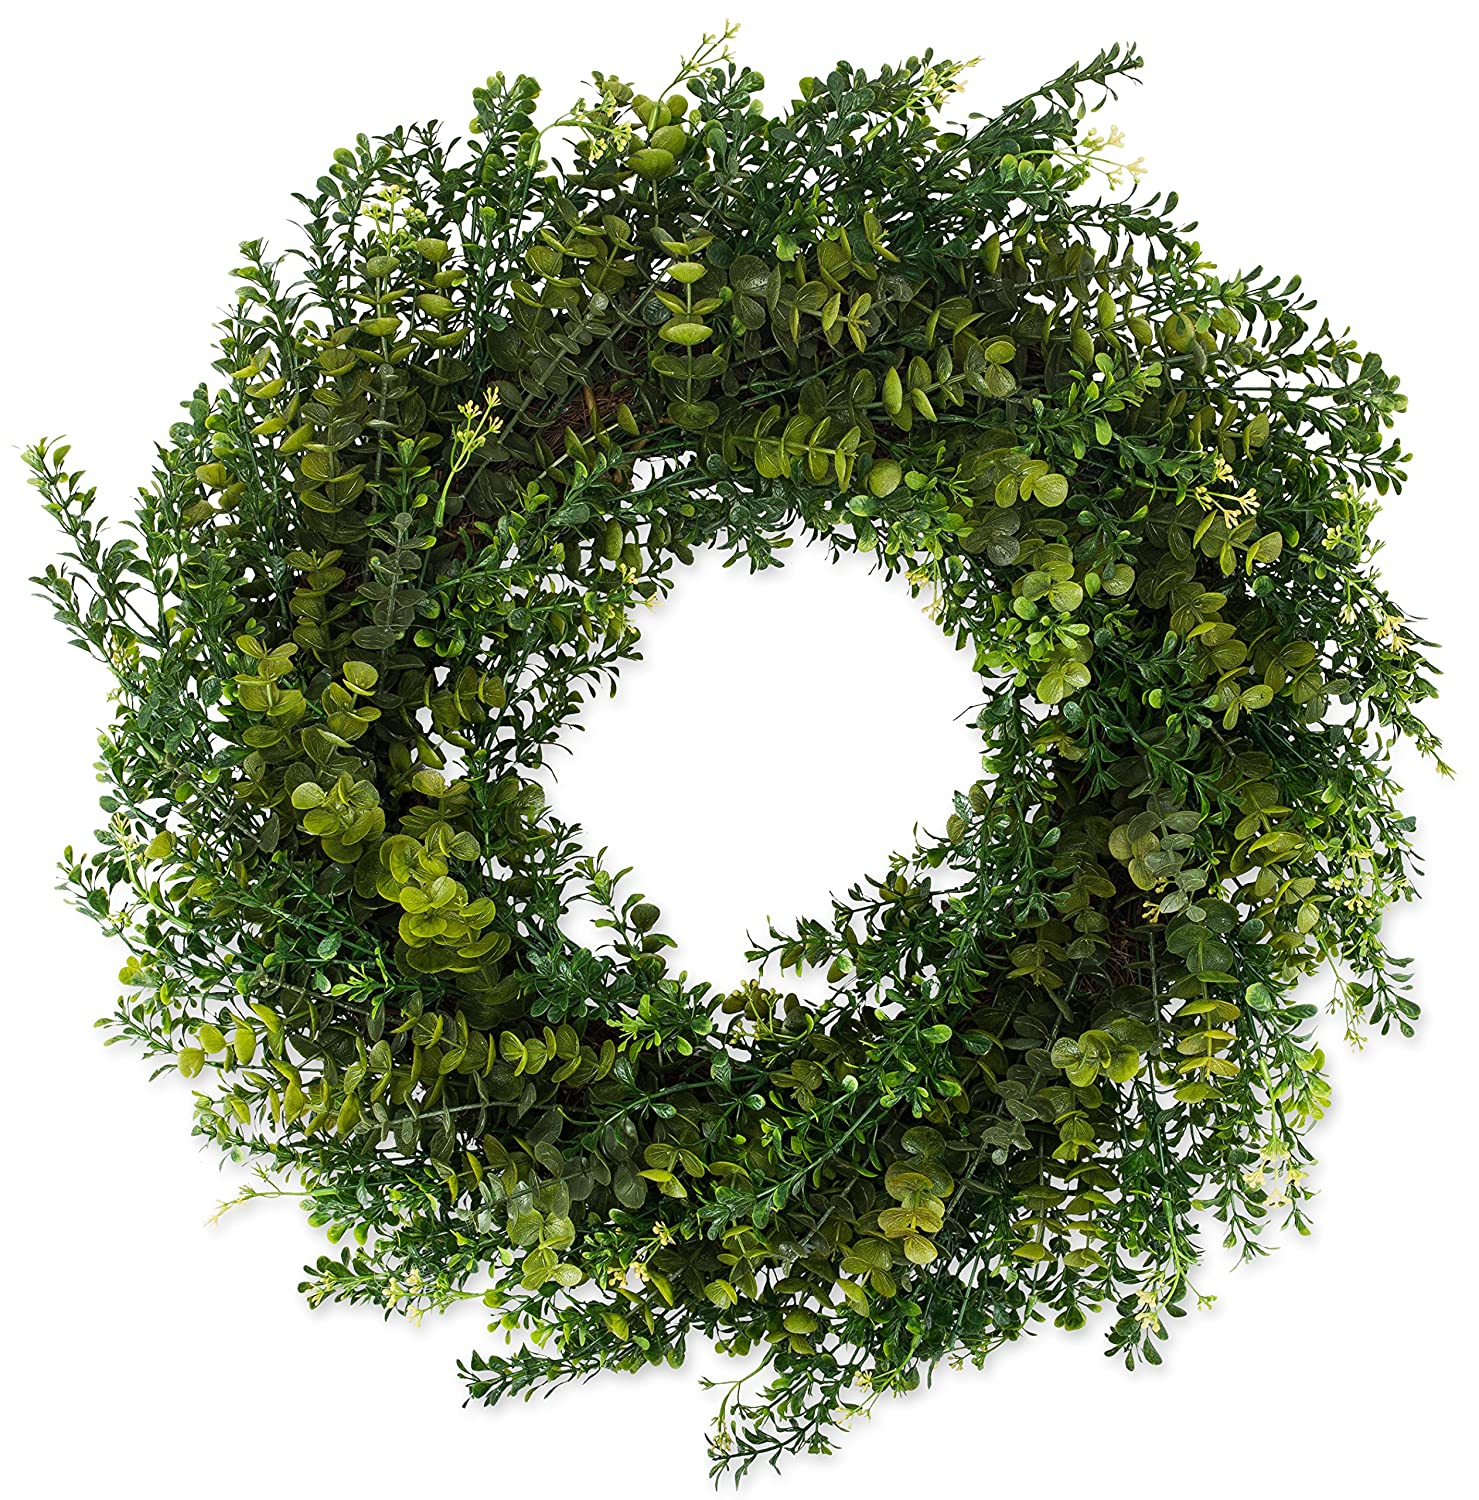 Arbor Artificial Boxwood Wreath 22 Inch- Full Year Round Outdoor Wreath Lasts for Years, Measures True to Size and Looks Great from The Street, Beautiful White Gift Box Included The Wreath Depot